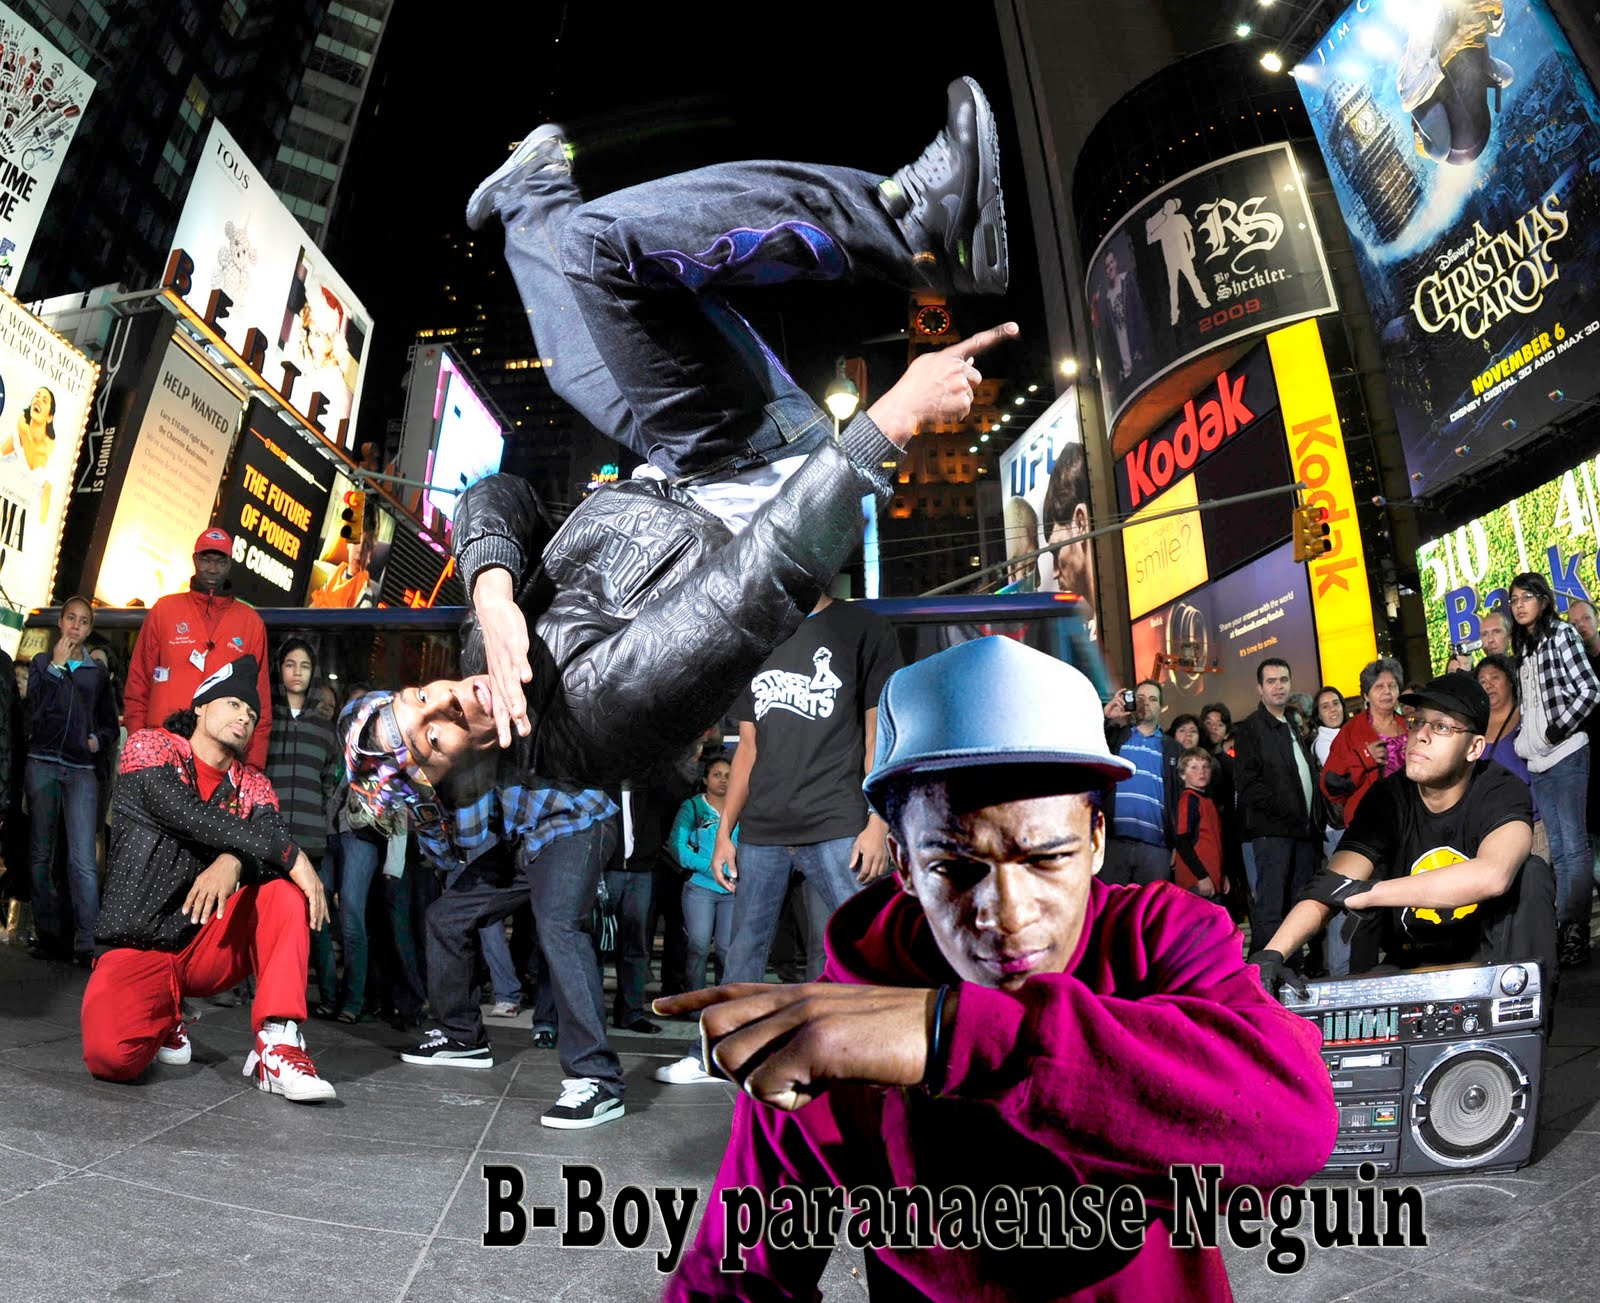 Bboy Graffiti Wallpapers On Wallpaperdog